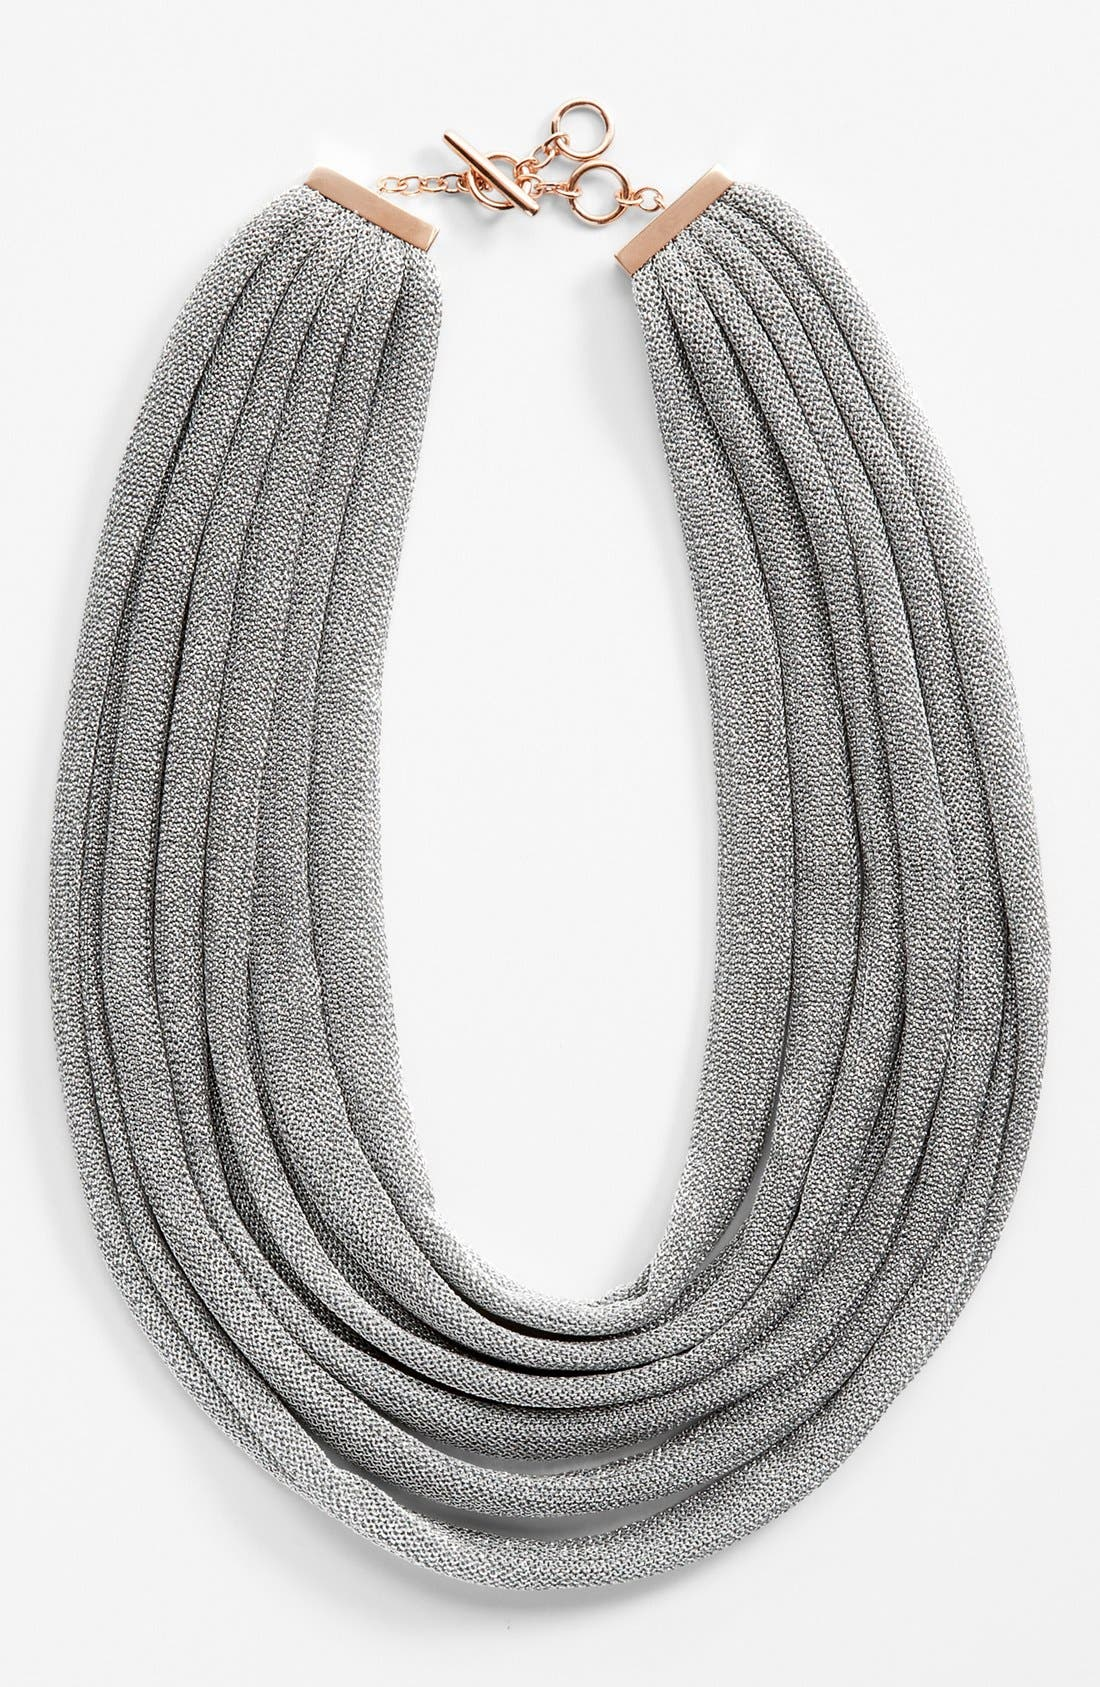 Alternate Image 2  - Adami & Martucci 'Mesh' Multistrand Bib Necklace